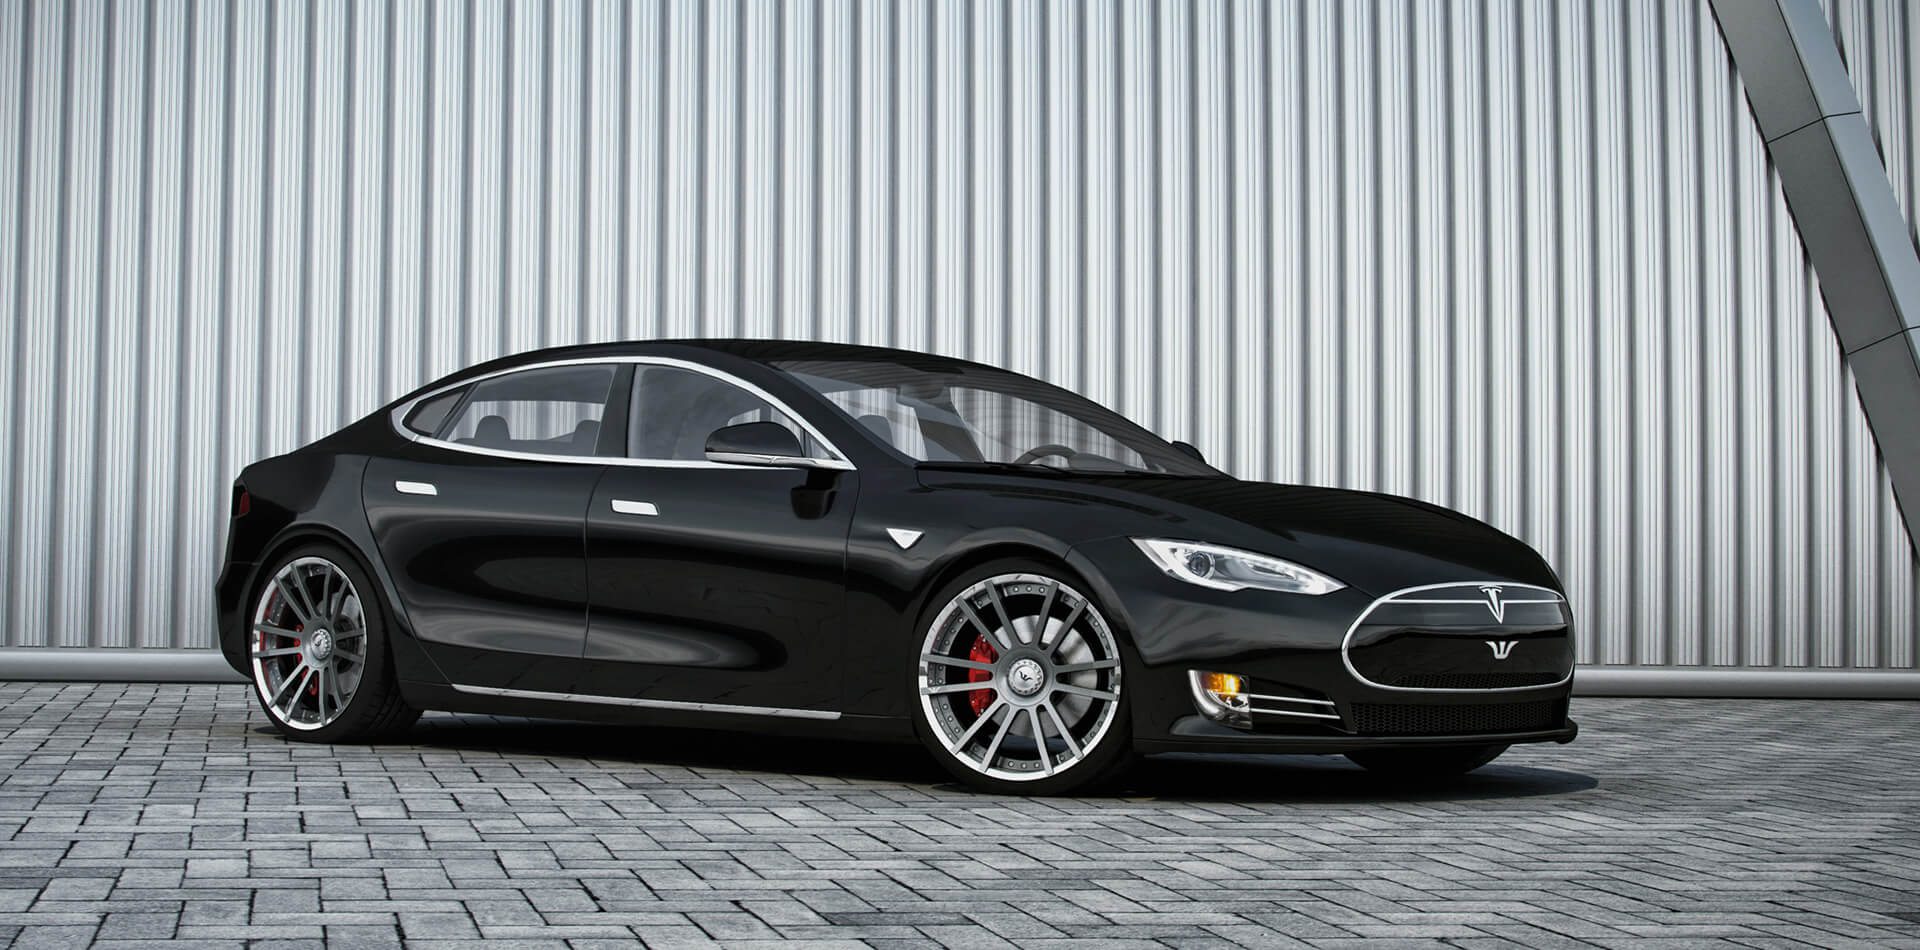 tesla model s felgen und tuning wheelsandmore. Black Bedroom Furniture Sets. Home Design Ideas